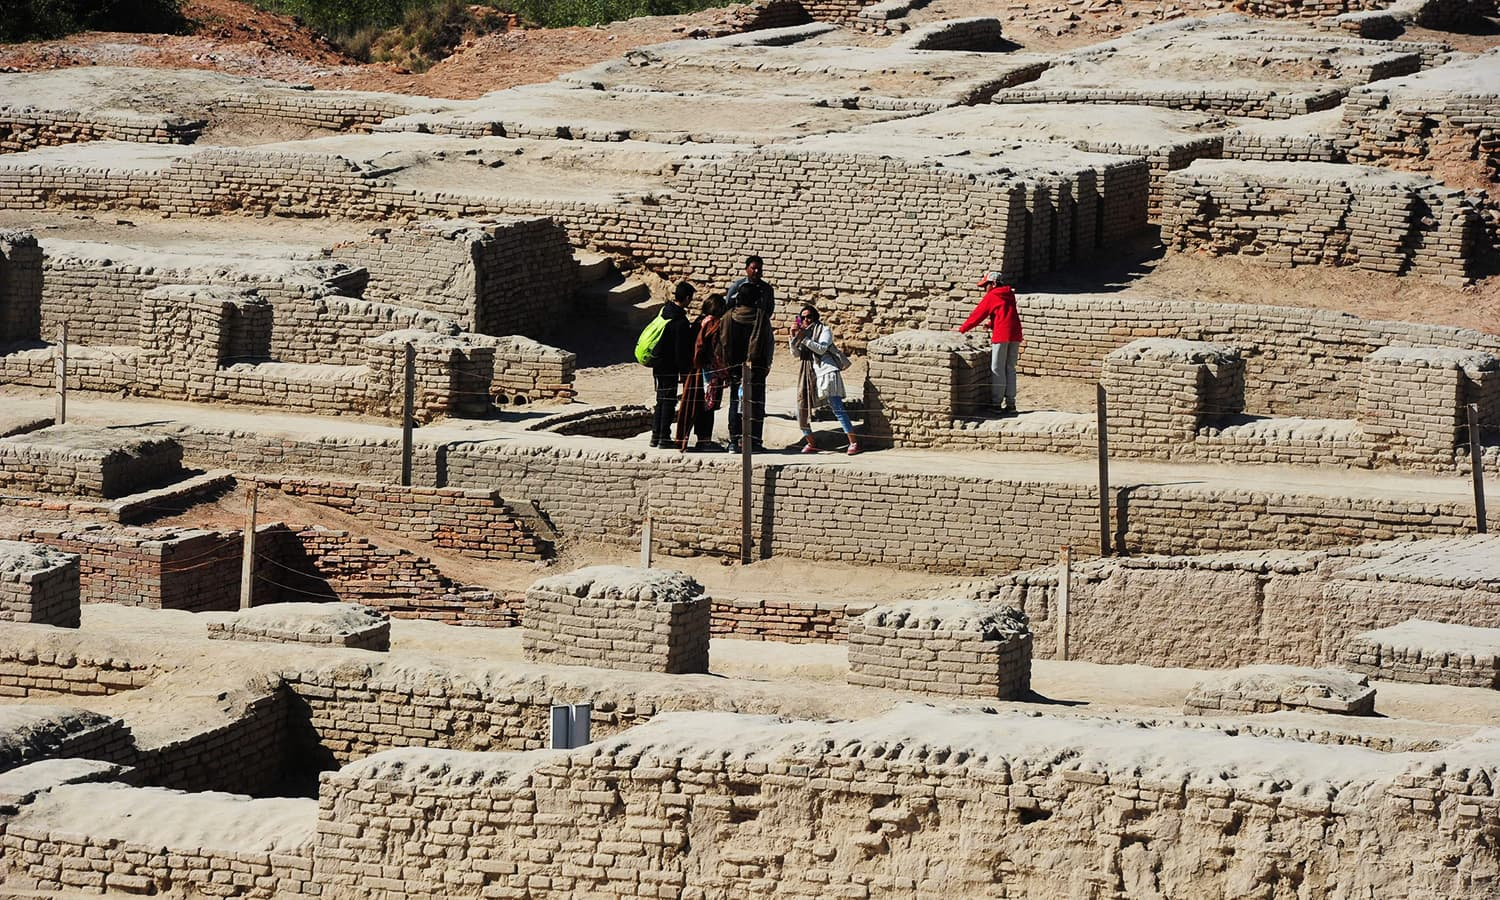 Visitors carelessly tread on the ancient ruins. — AFP